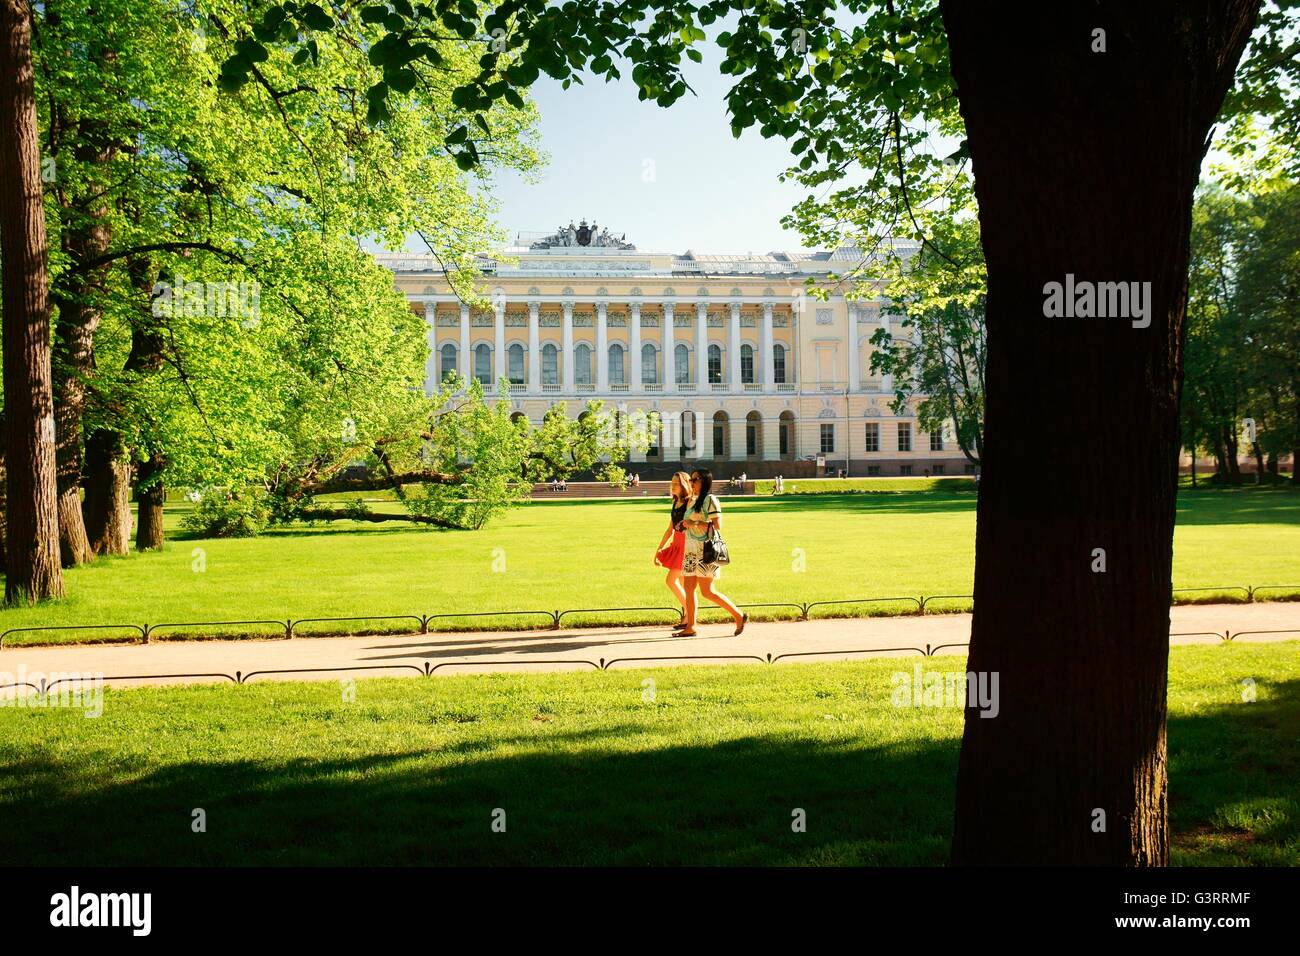 Saint Petersburg Russia. The Mikhailovsky Palace houses the Russian Museum. Seen from the Mikhailovsky Gardens Stock Photo